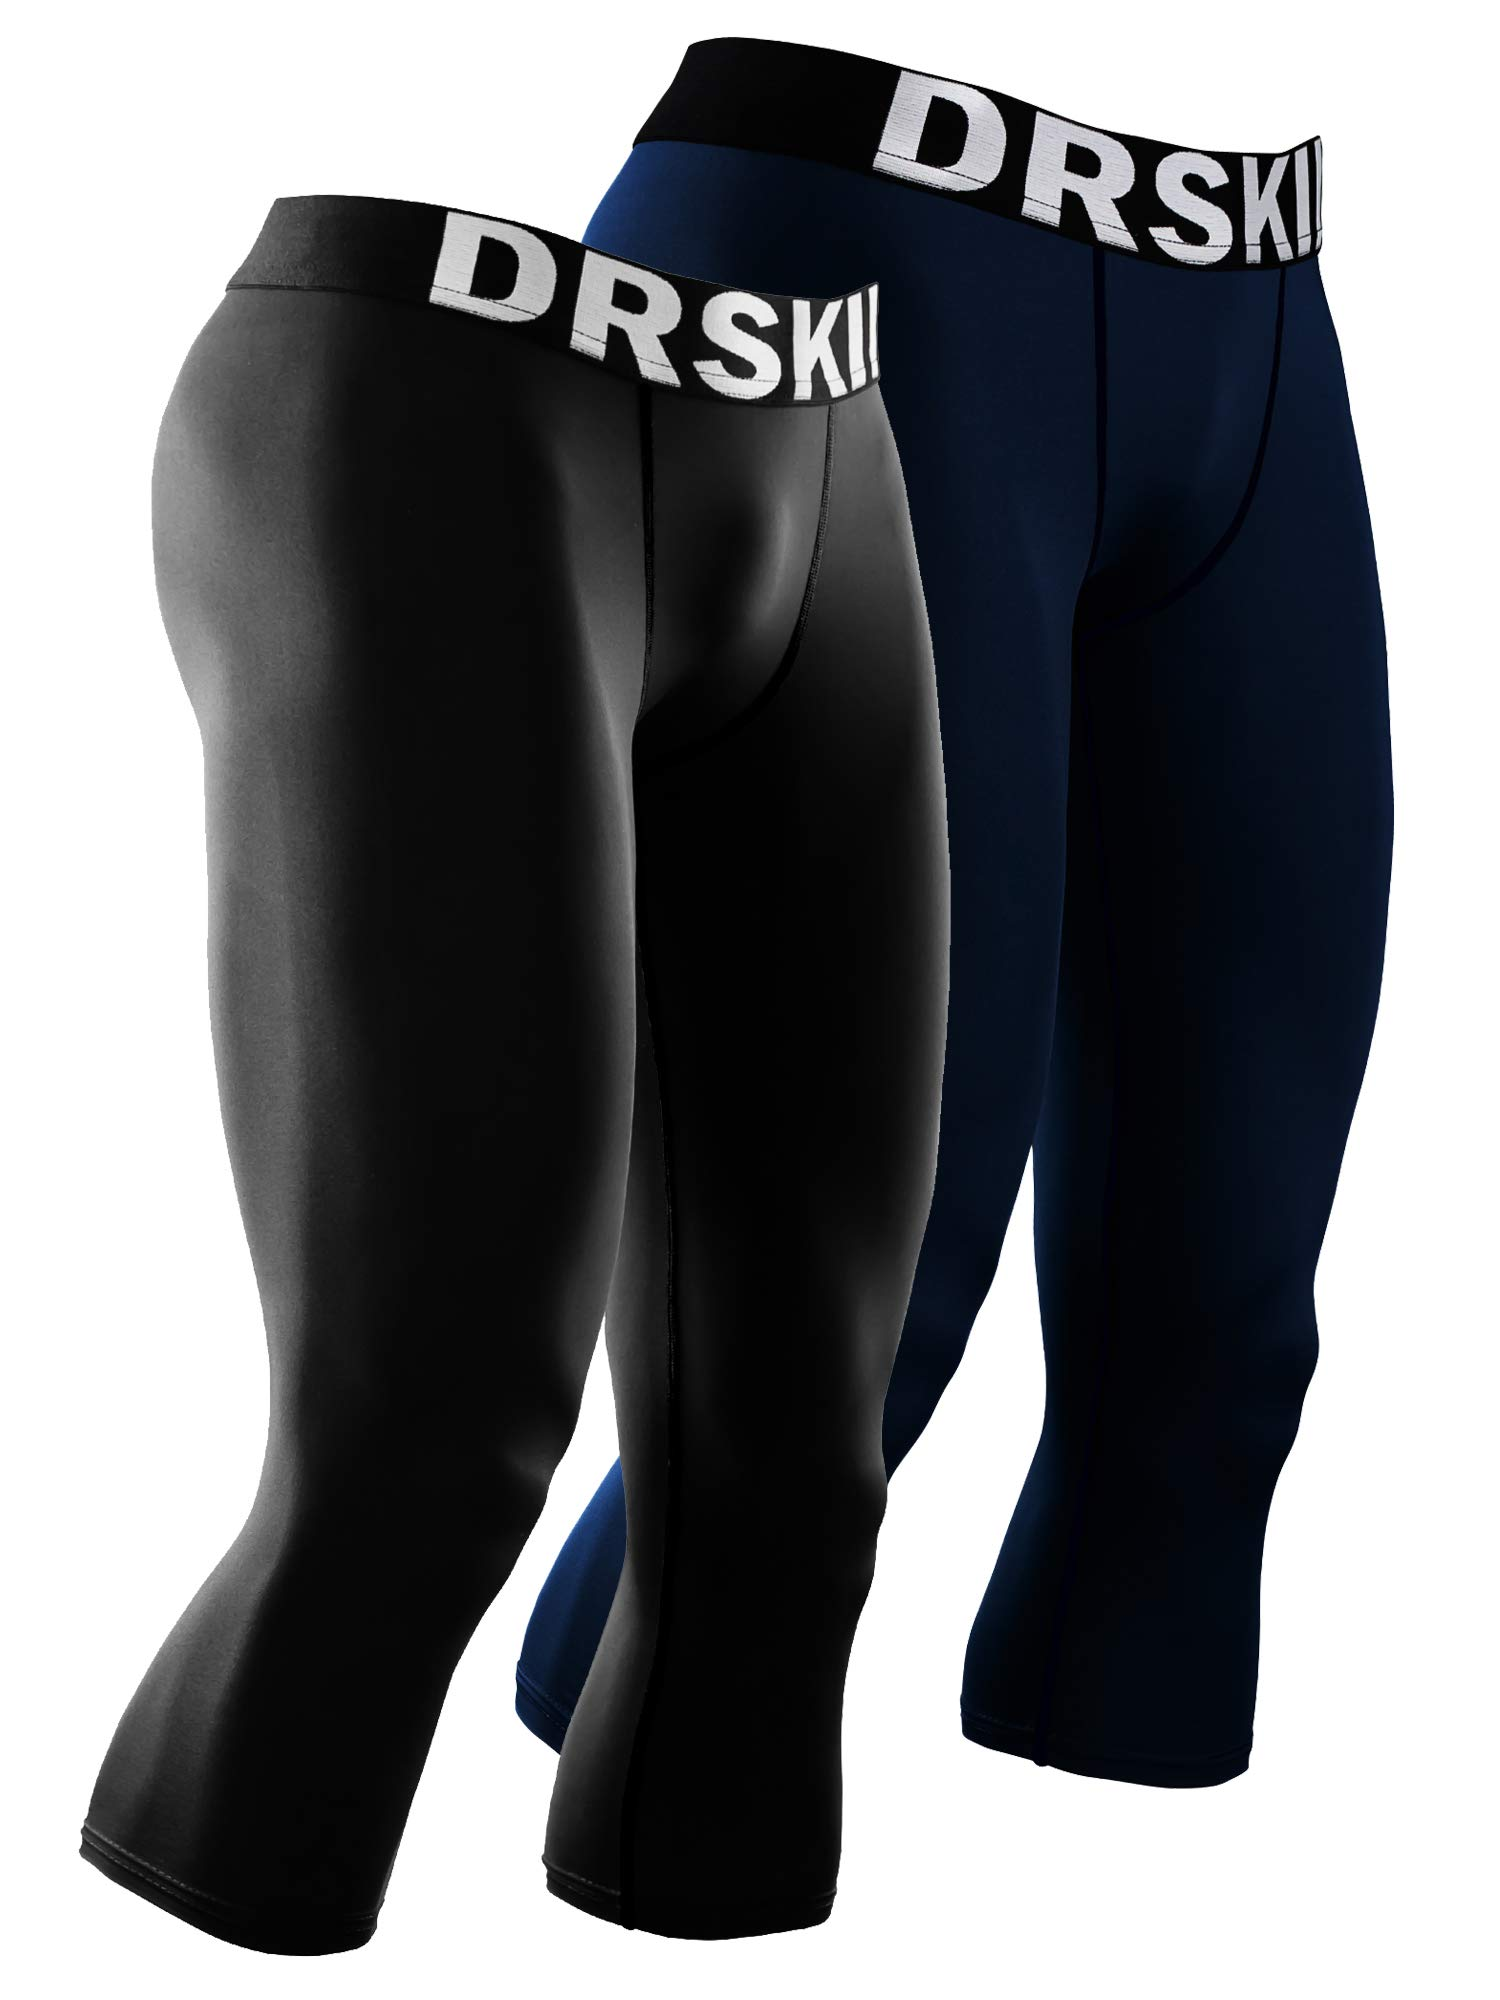 DRSKIN 1~3 Pack Men's 3/4 Compression Tight Pants Base Under Layer Running Shorts Cool Dry (Packs of 1, 2, or 3 Deals) (Line (BB801+DNA808), L) by DRSKIN